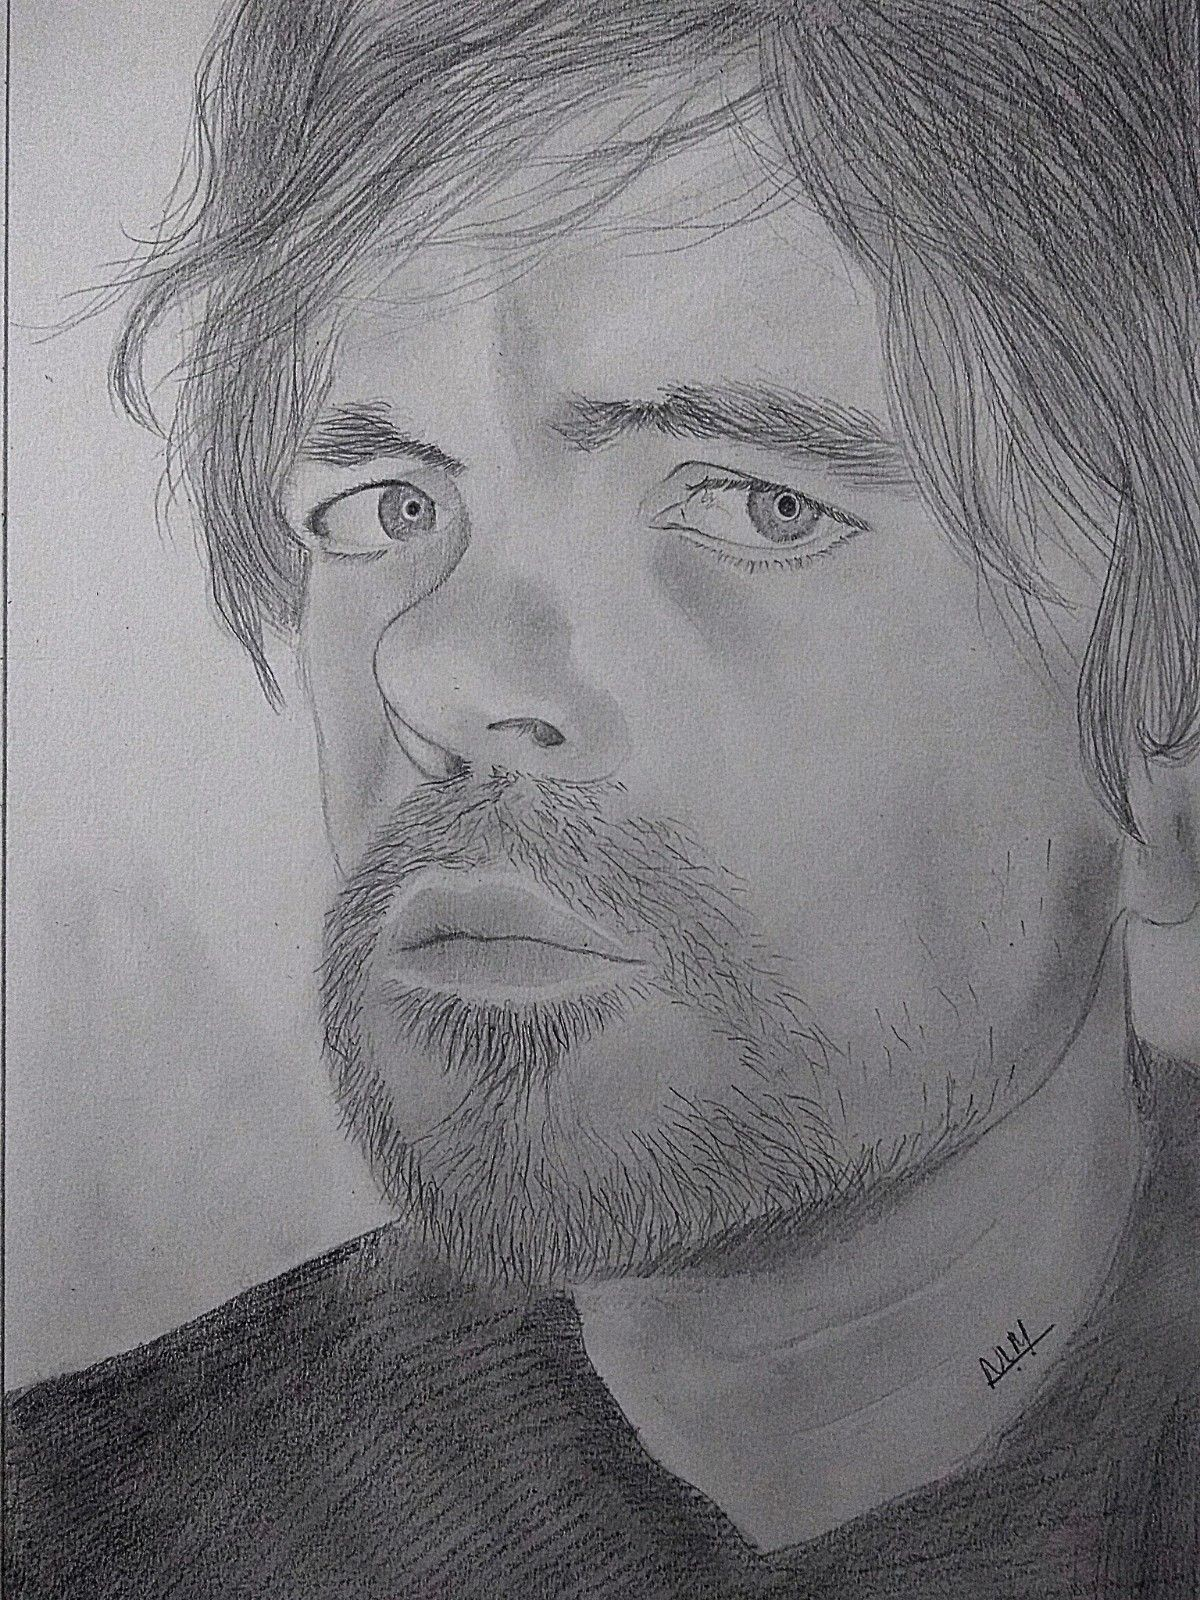 Peter Dinklage Sketch-drawing Showflipper